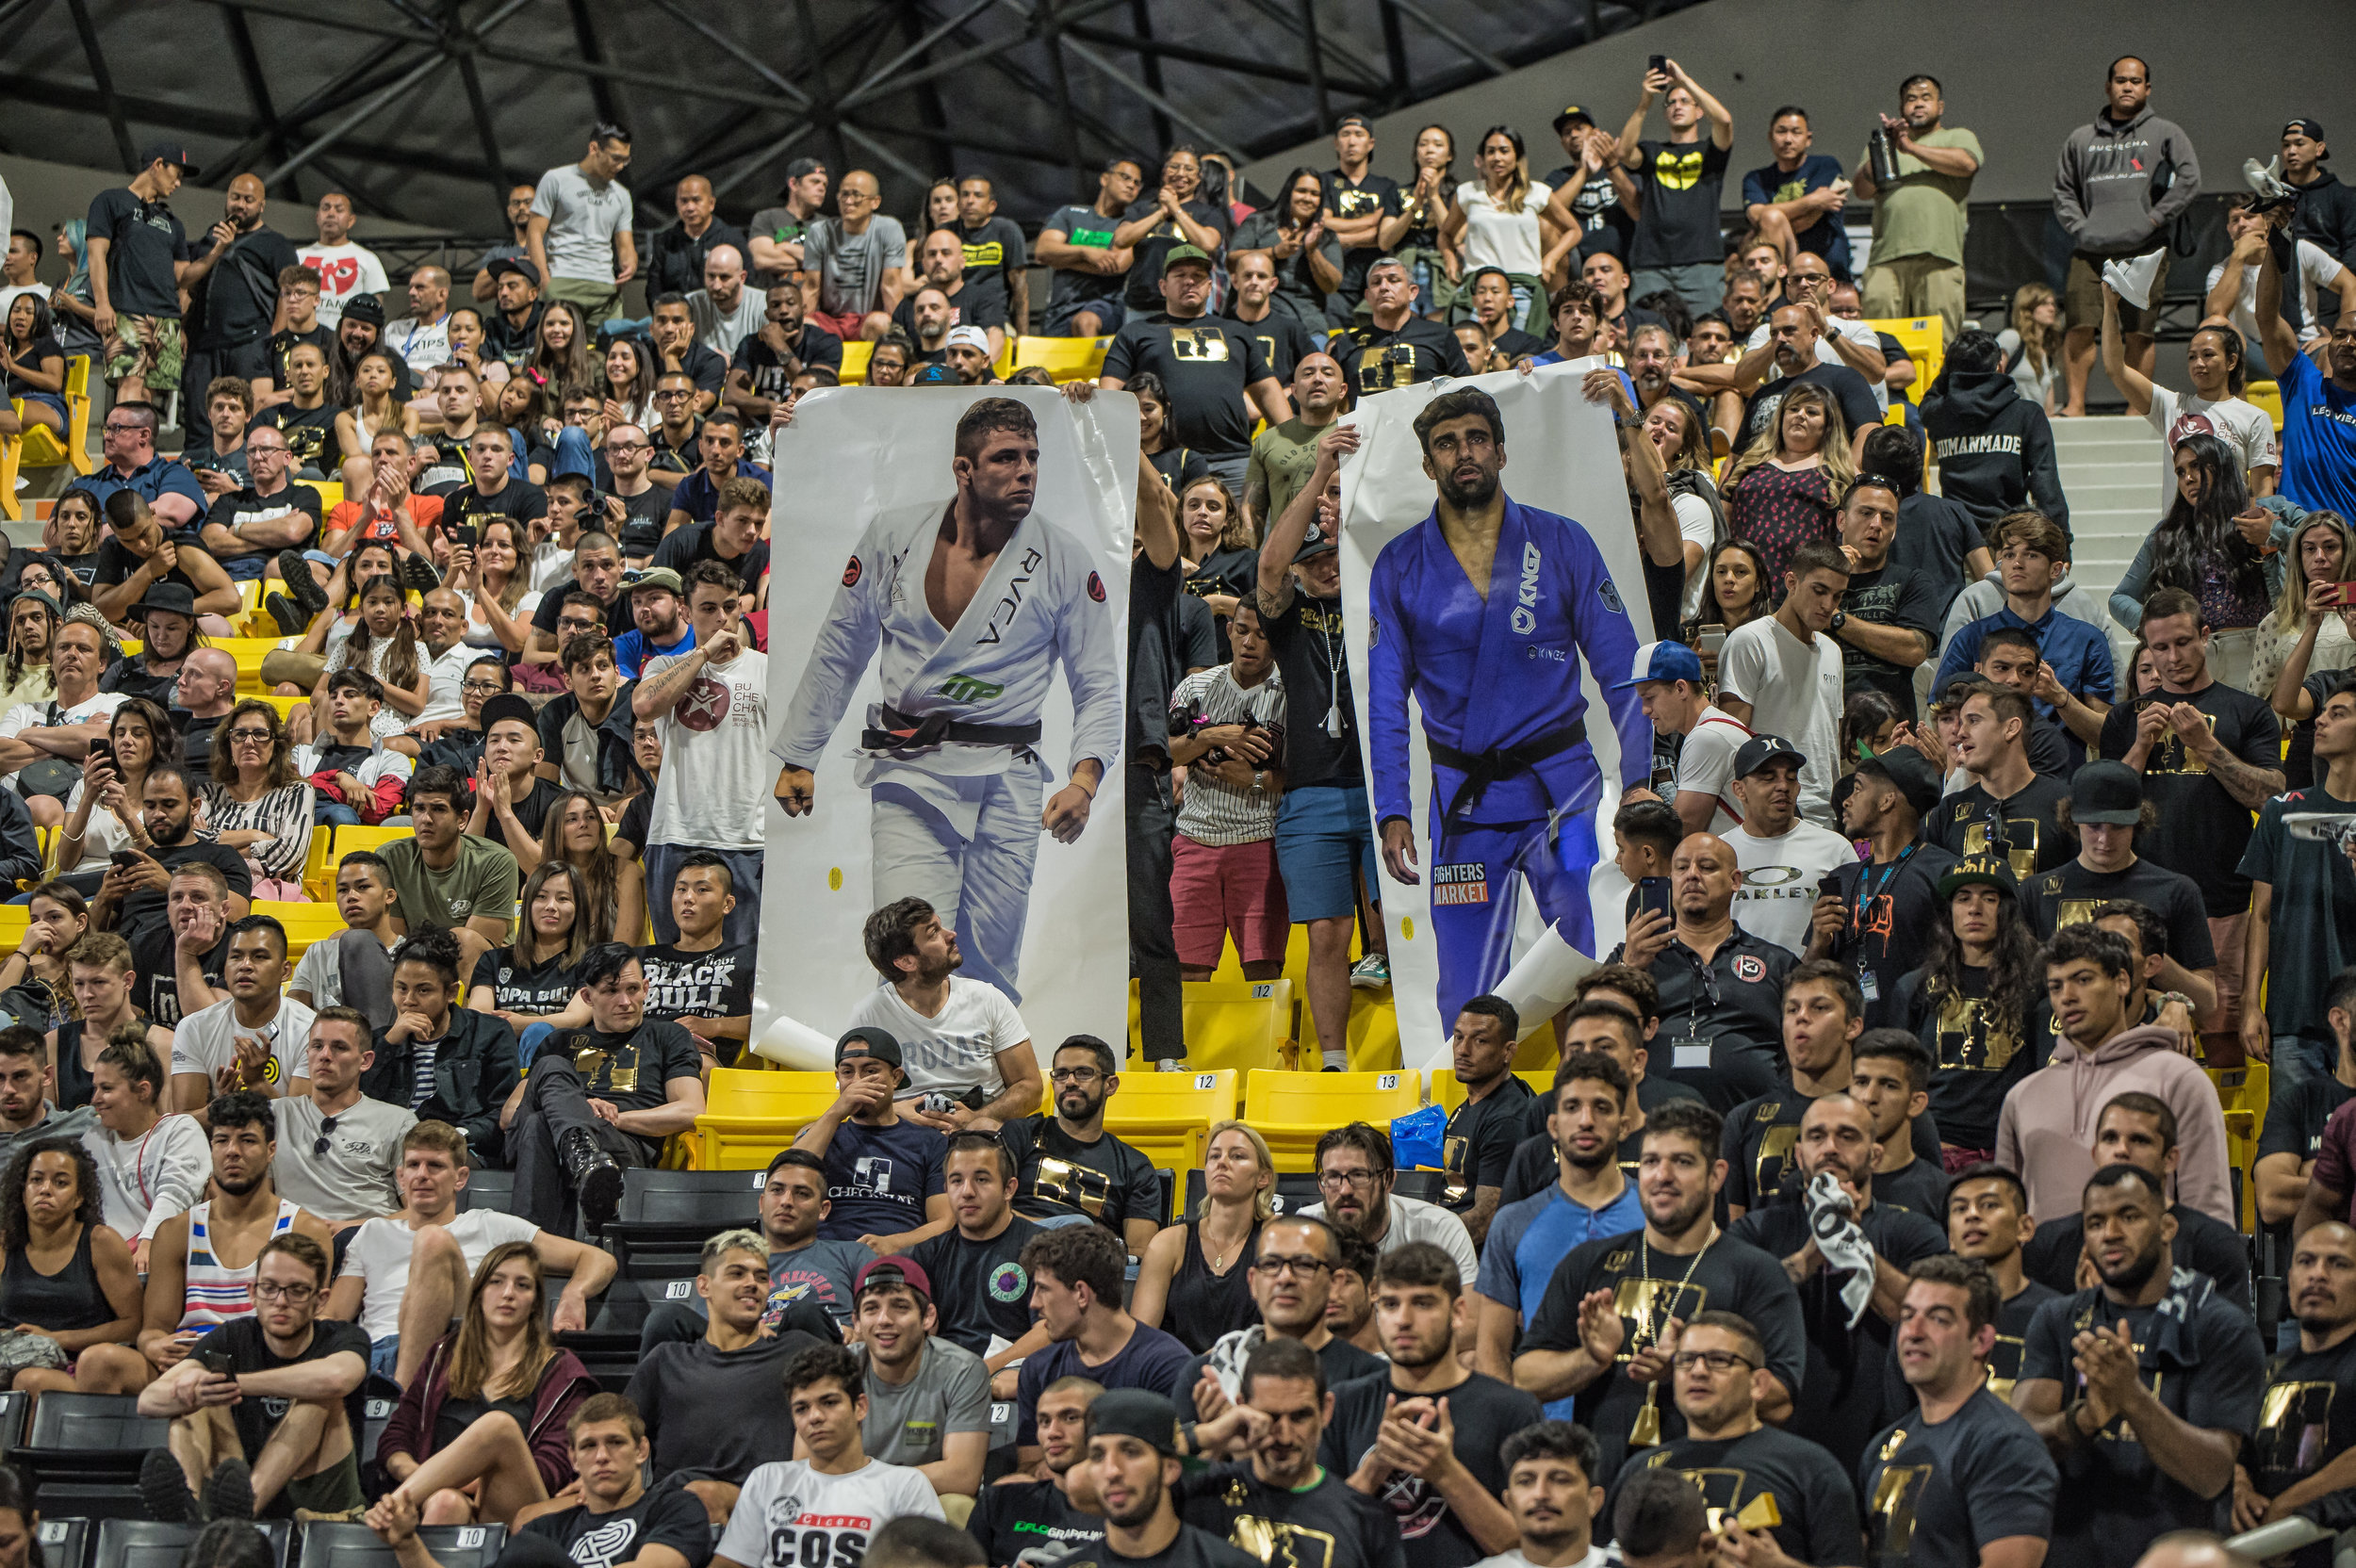 After Buchecha gave Lo the Gold, the crowd unveiled these giant LisaLisaPics in support for both athletes! Yea!! Big thanks to BJJ Marketing for making that happen!